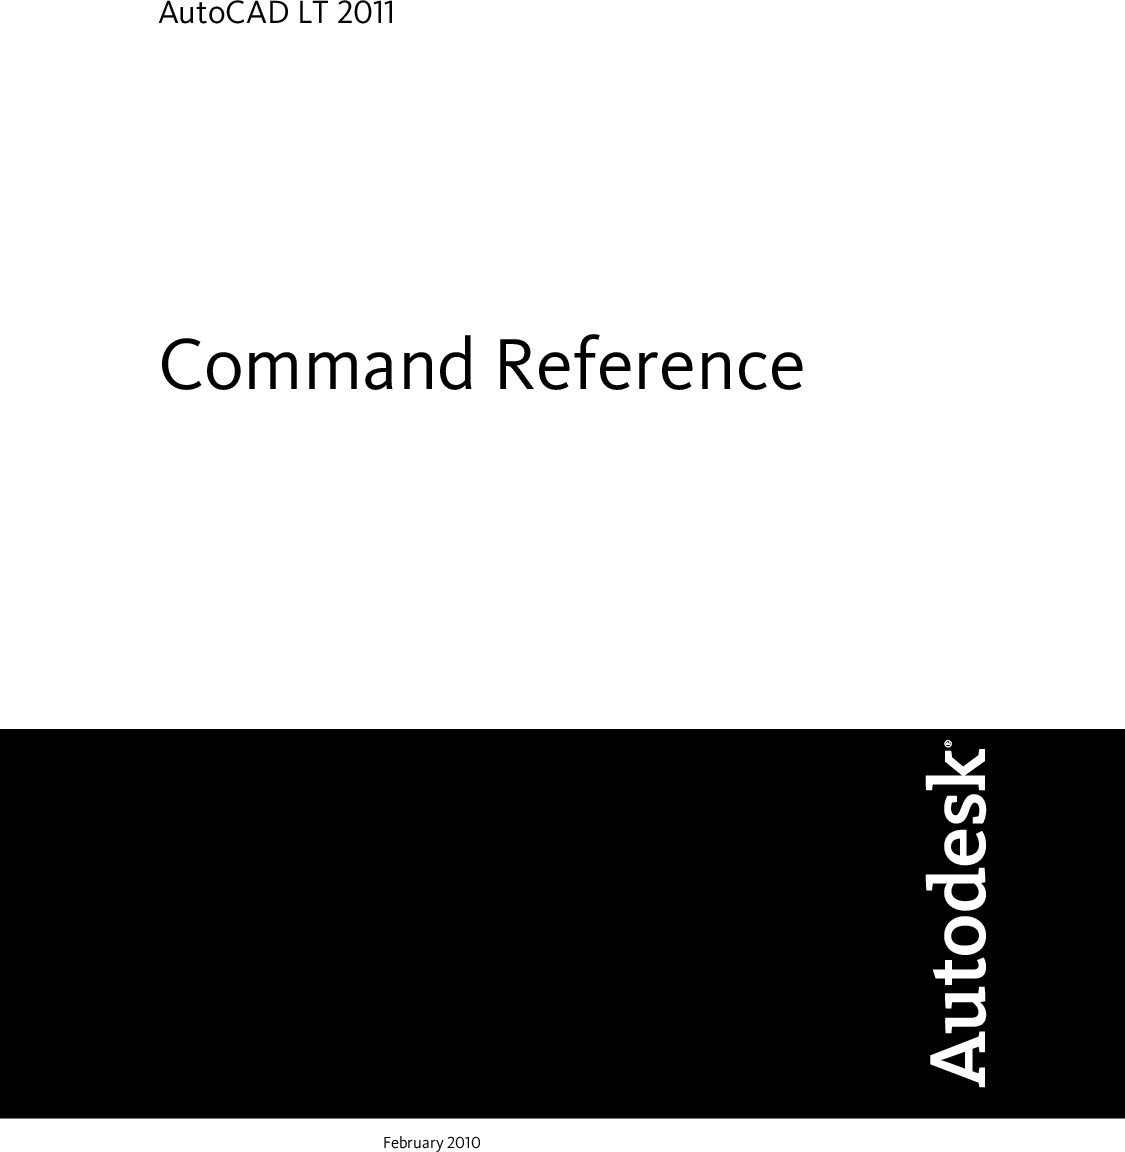 Autodesk Auto CAD LT 2011 Command Reference